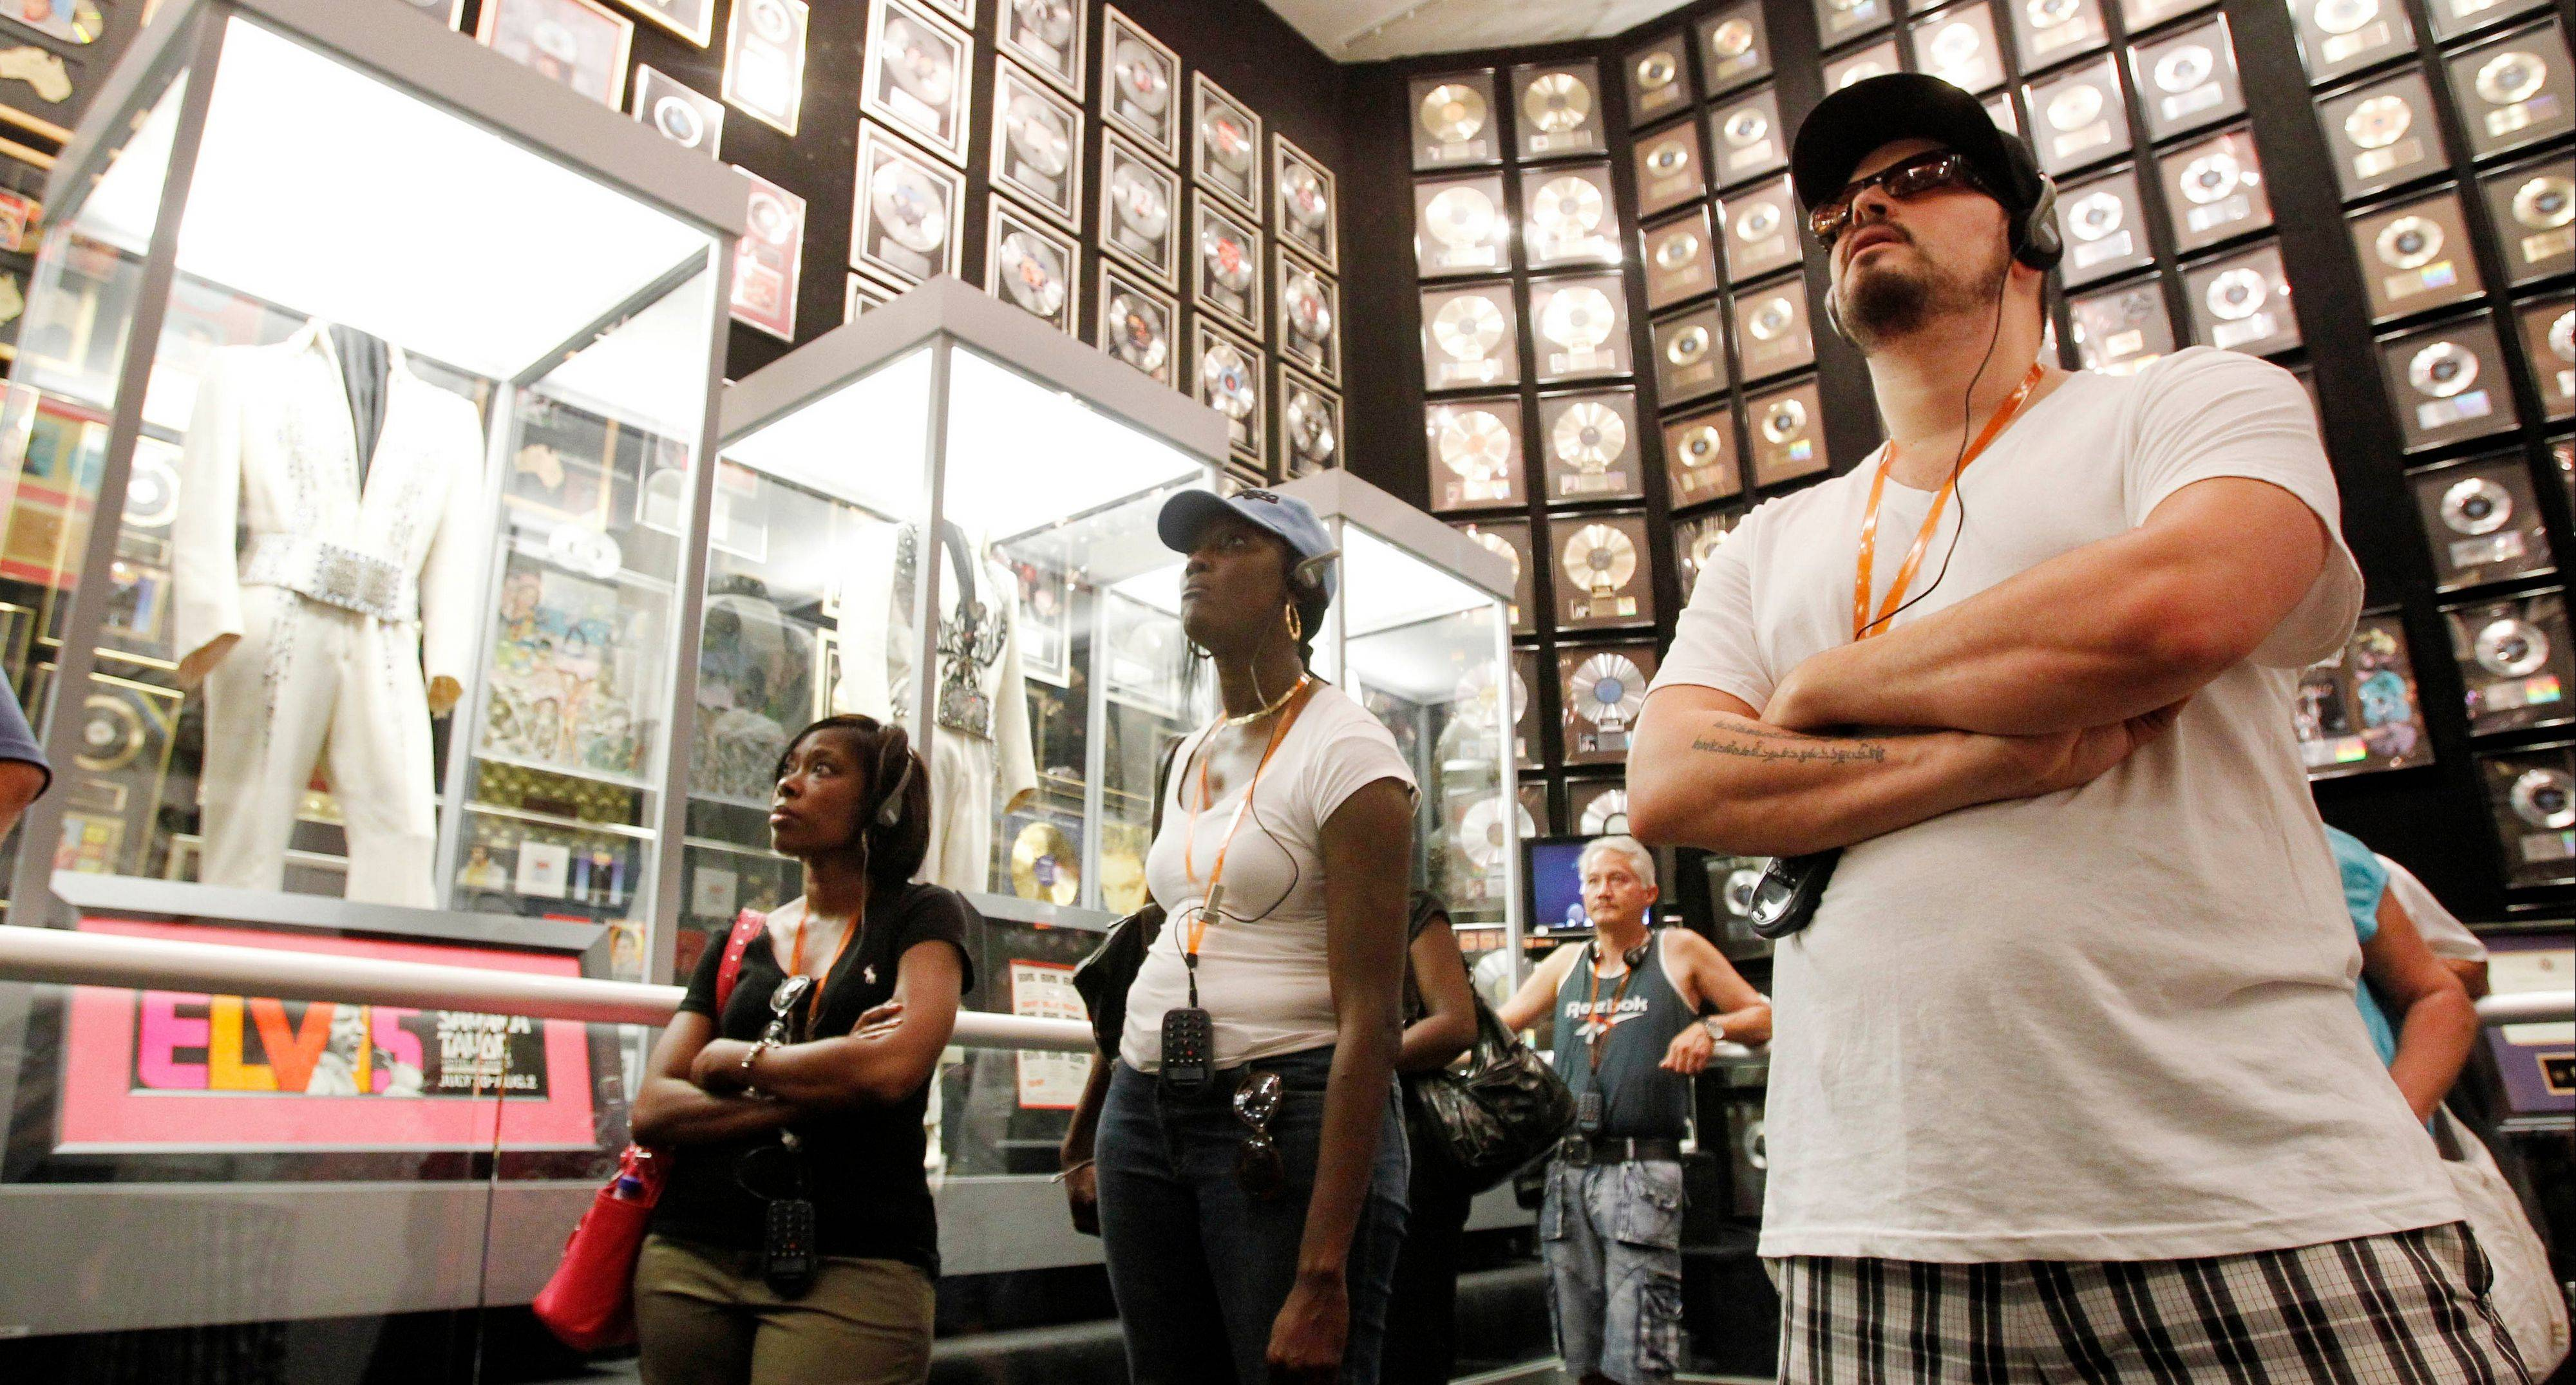 Tourists explore the trophy room at Graceland.